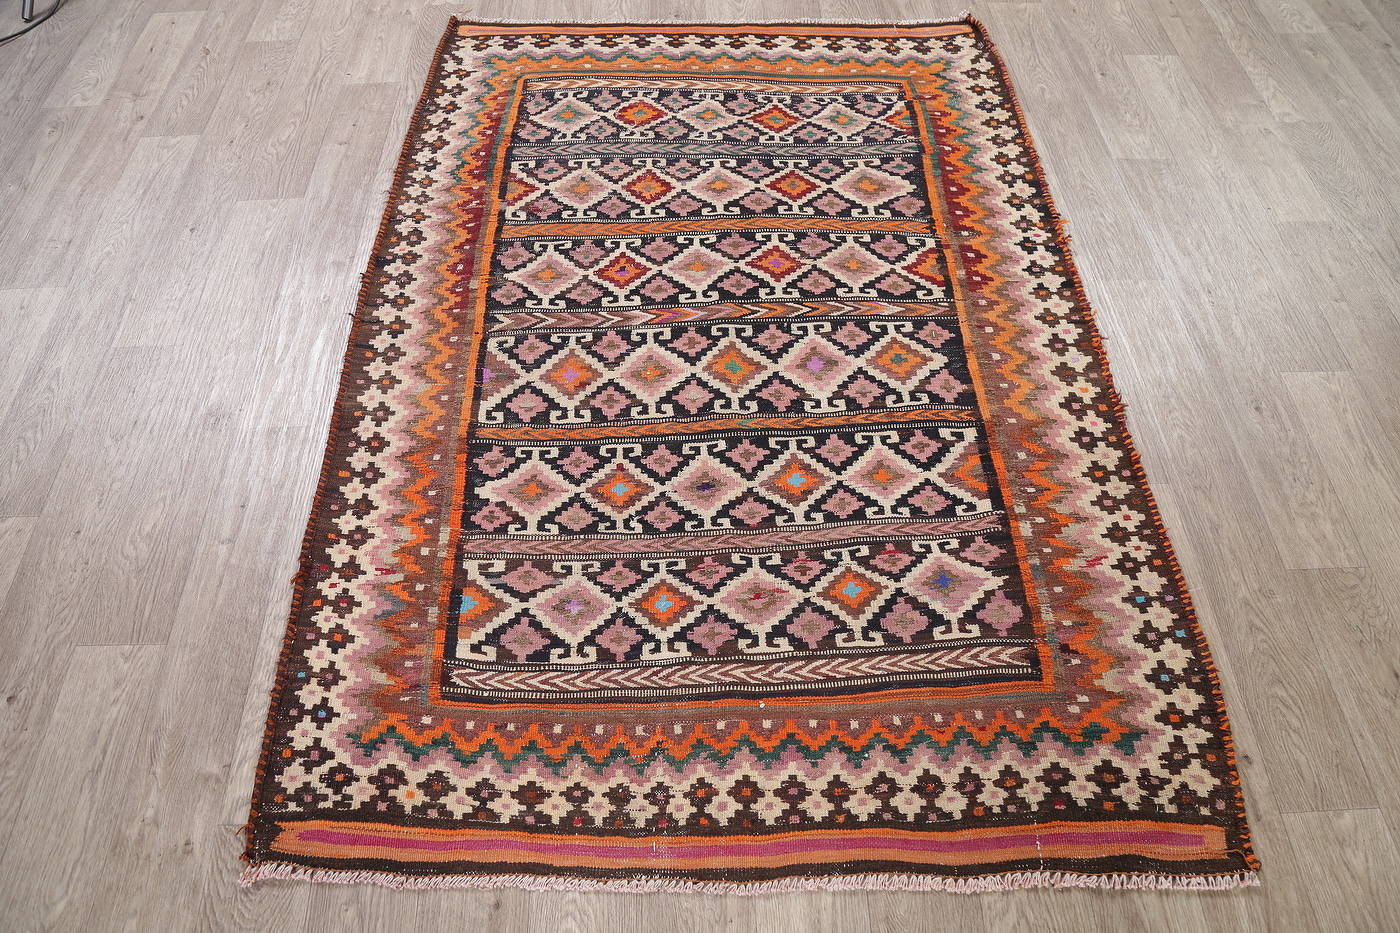 Antique Geometric Kilim Shiraz Persian Area Rug 4x6